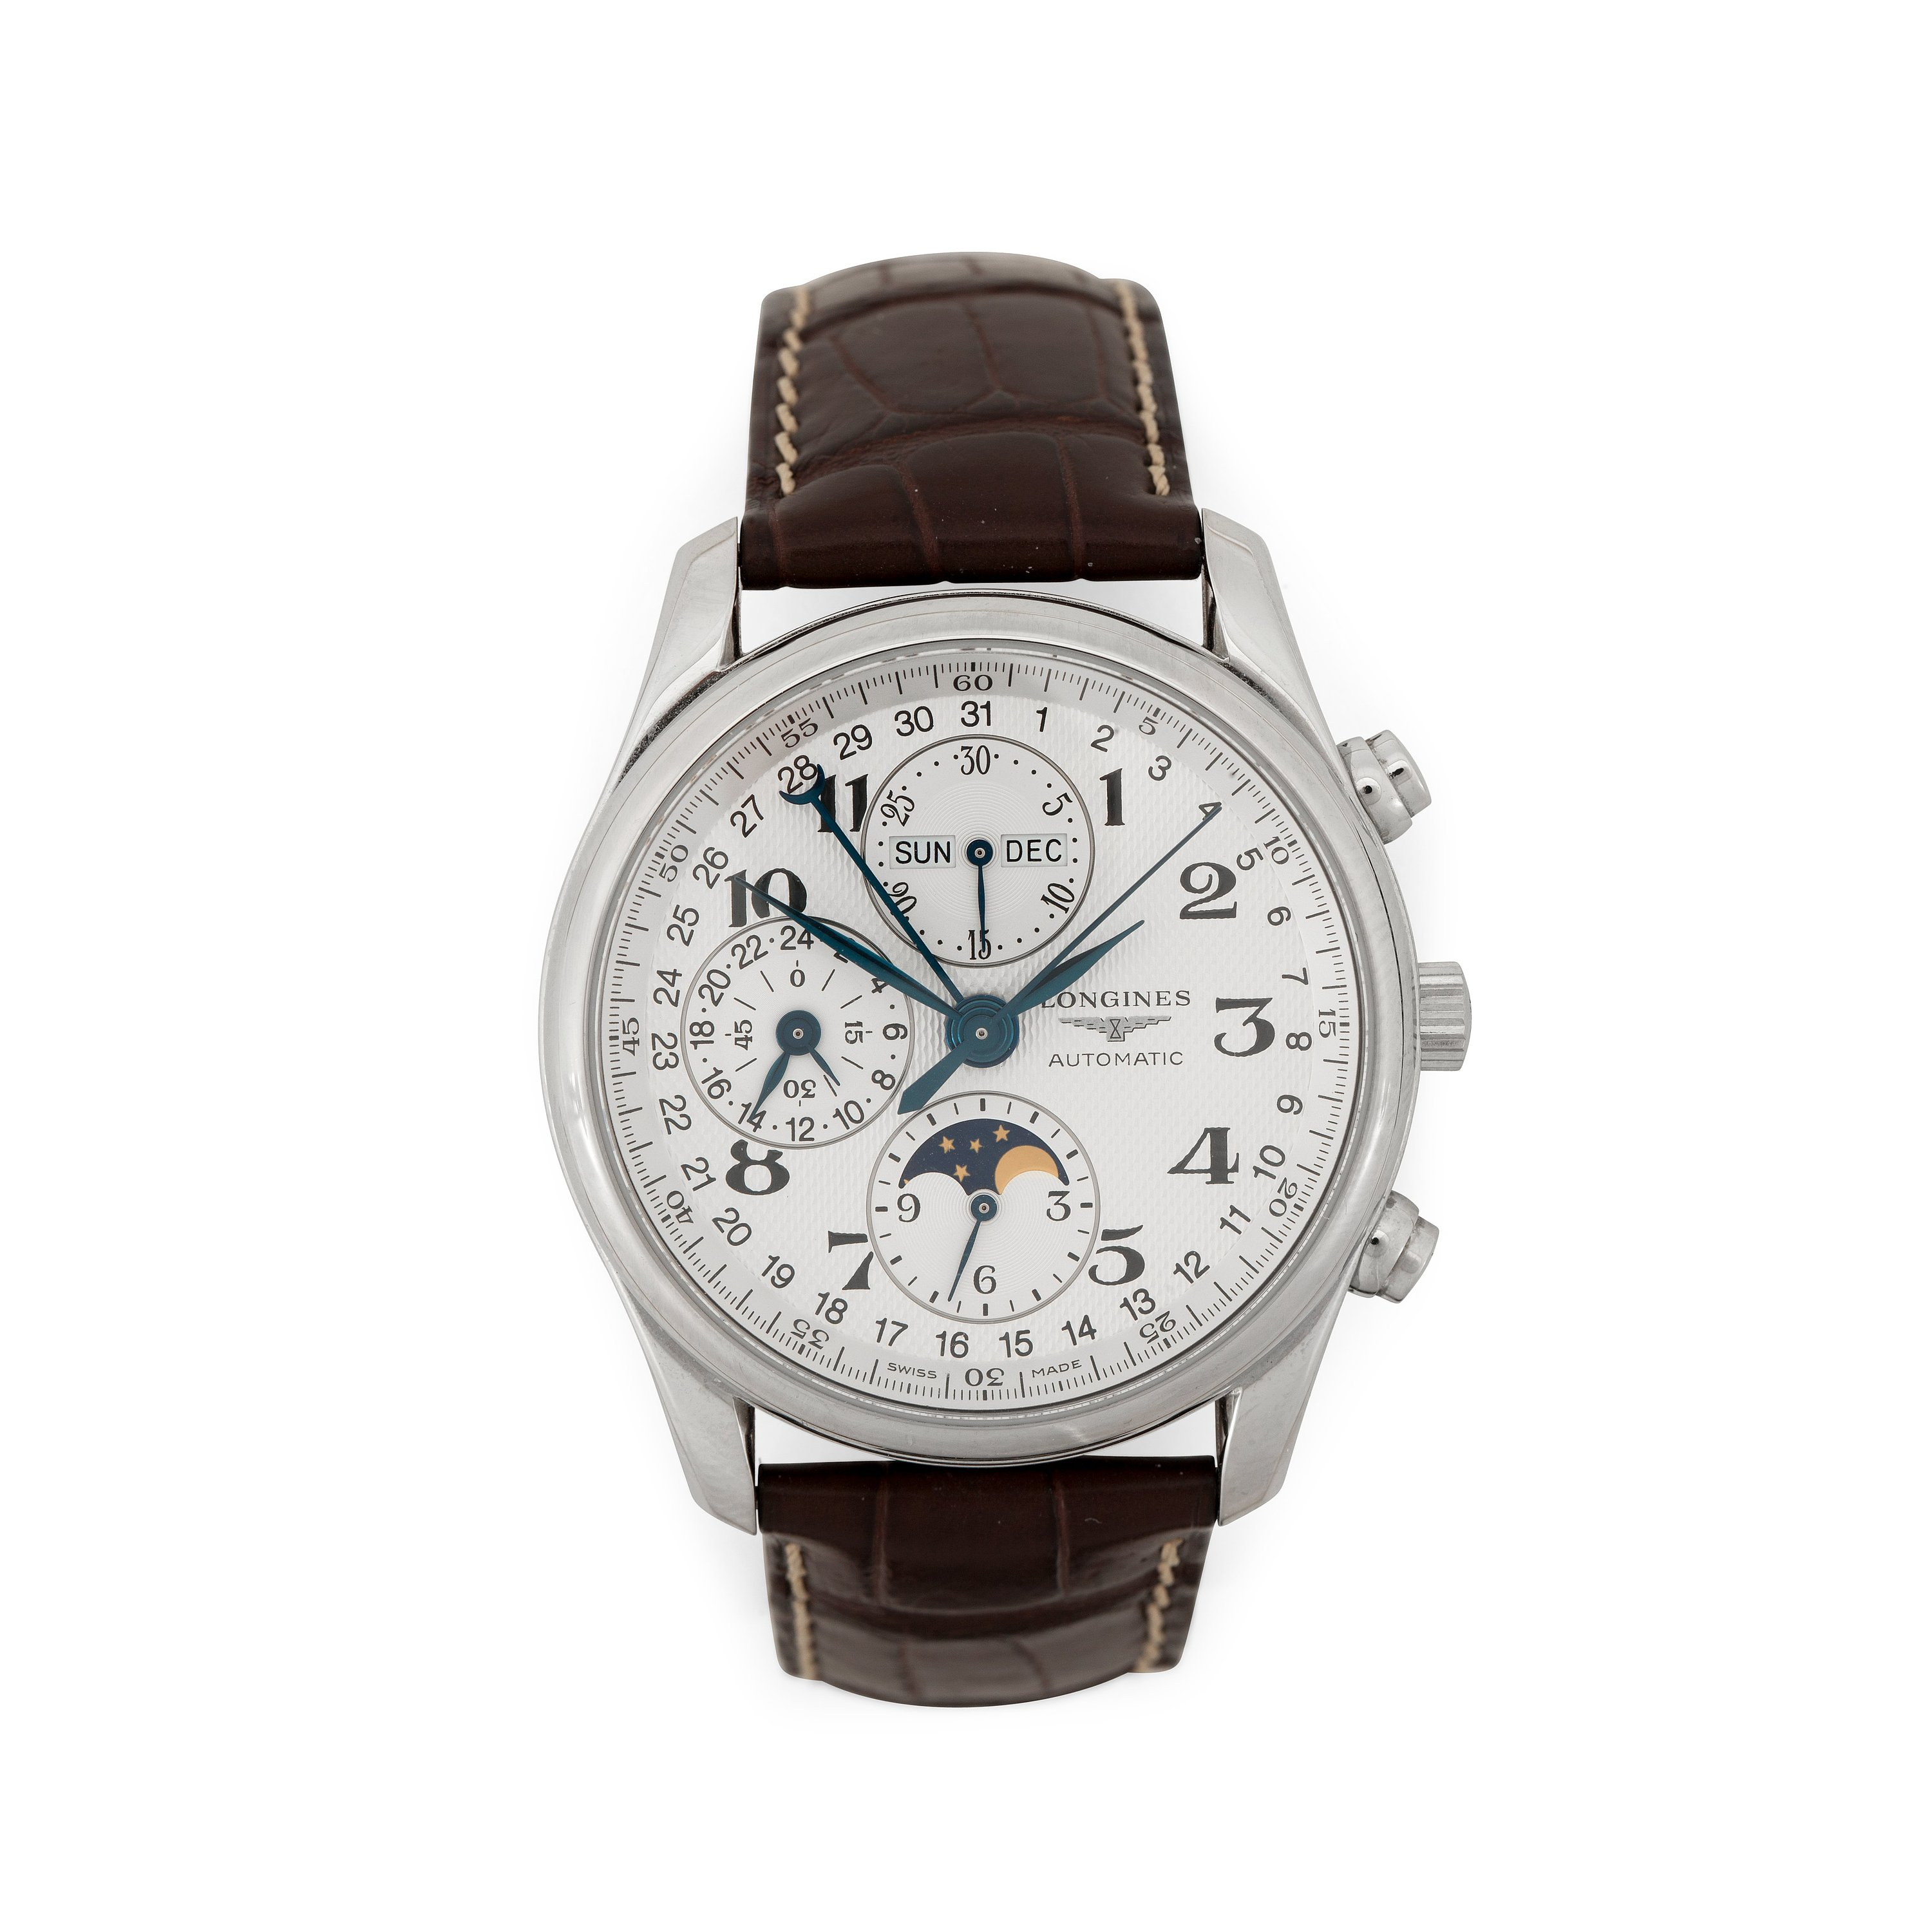 8118c6efebc Longines - Master Collection Chronograph Moonphase. Automatic. Steel    leather strap. 40mm.